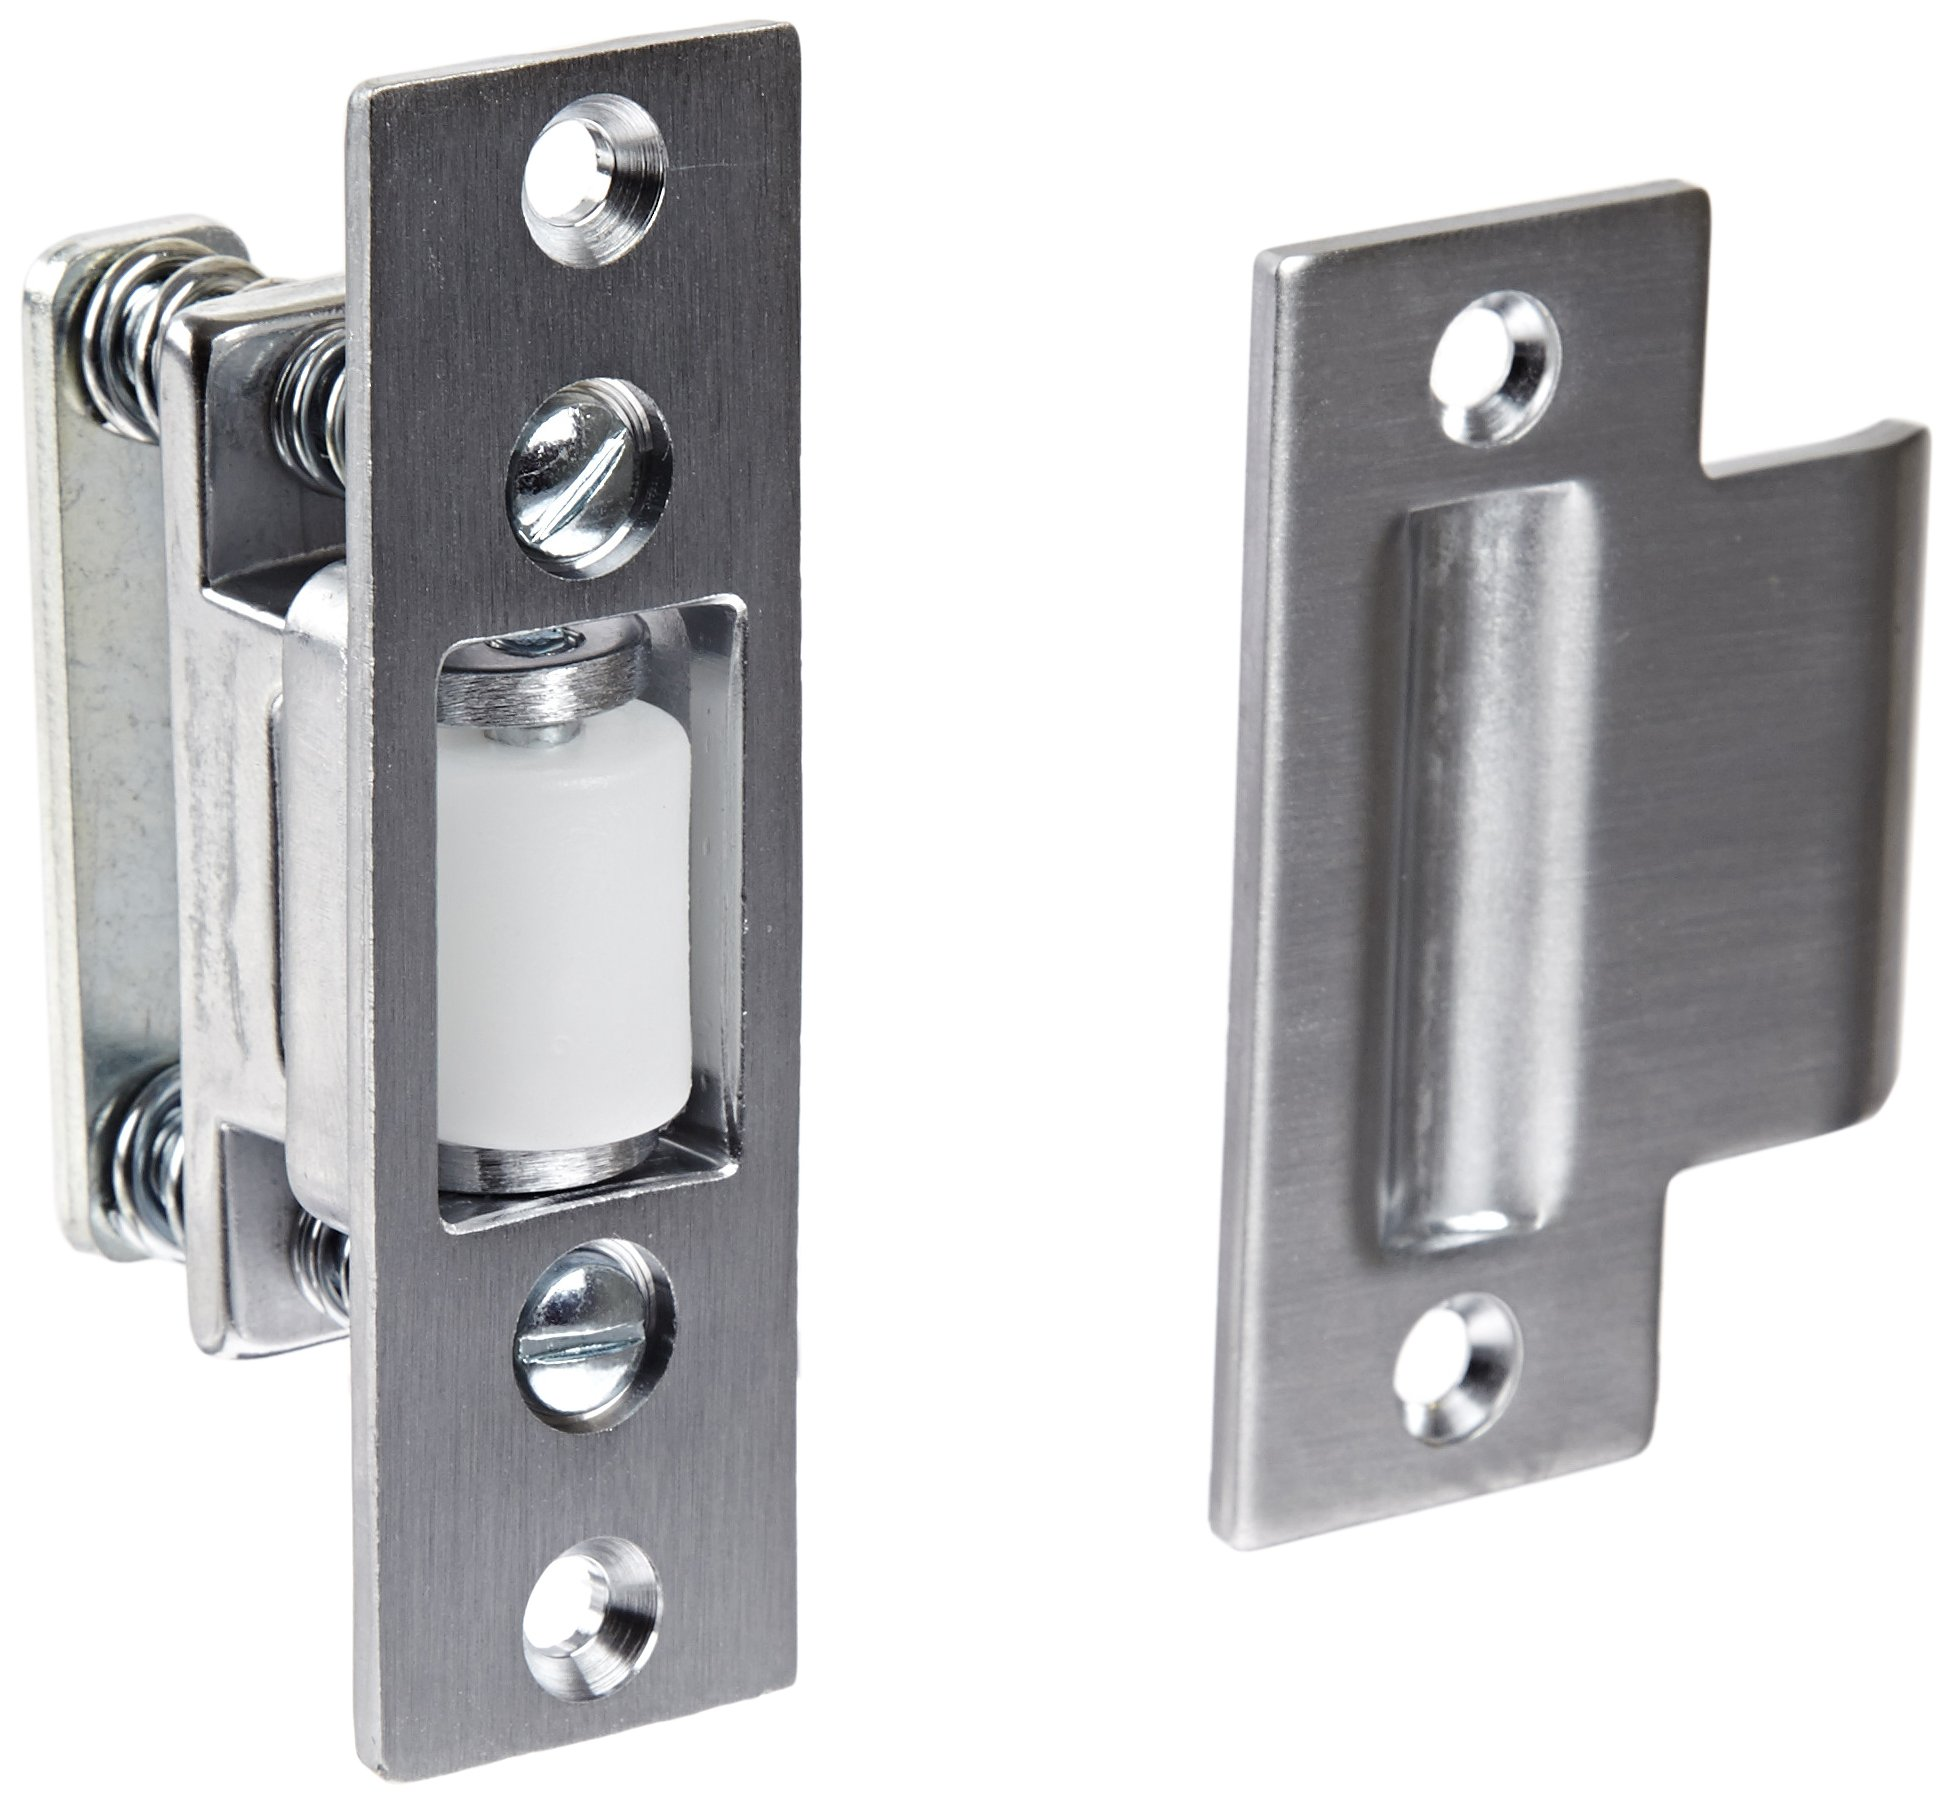 Rockwood 592.26D Brass Roller Latch with #161 Strike, 1'' Width x 3-3/8'' Length, 1-1/8'' Strike Width x 2-3/4'' Strike Length, Satin Chrome Plated Finish